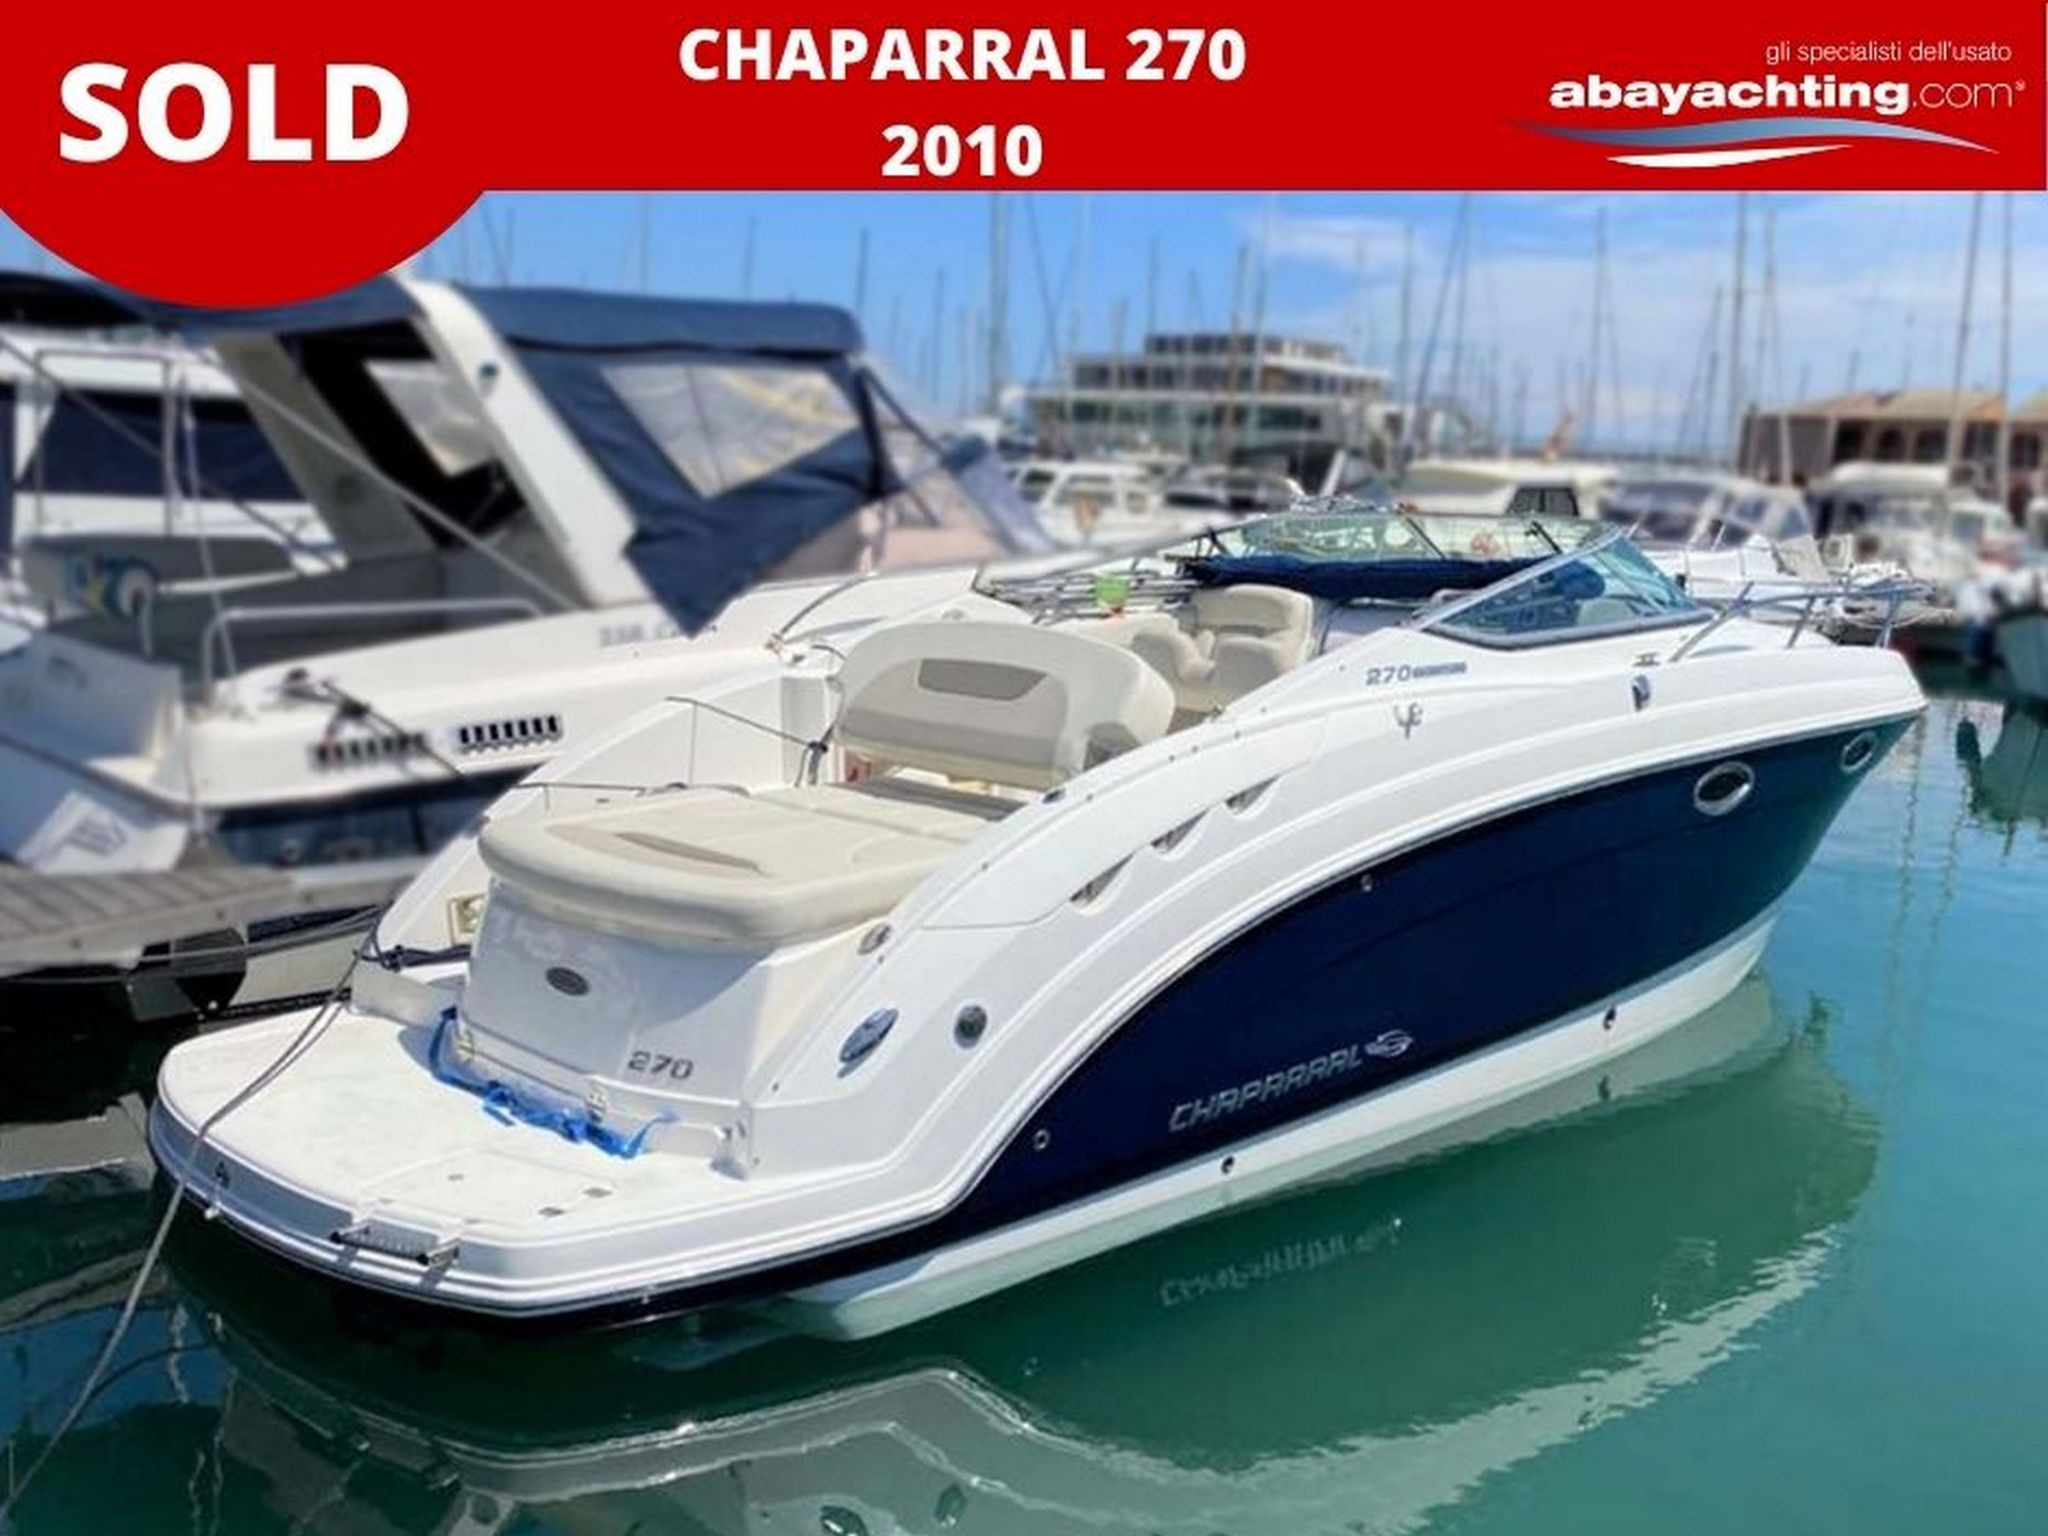 Chaparral 270 year 2010 sold